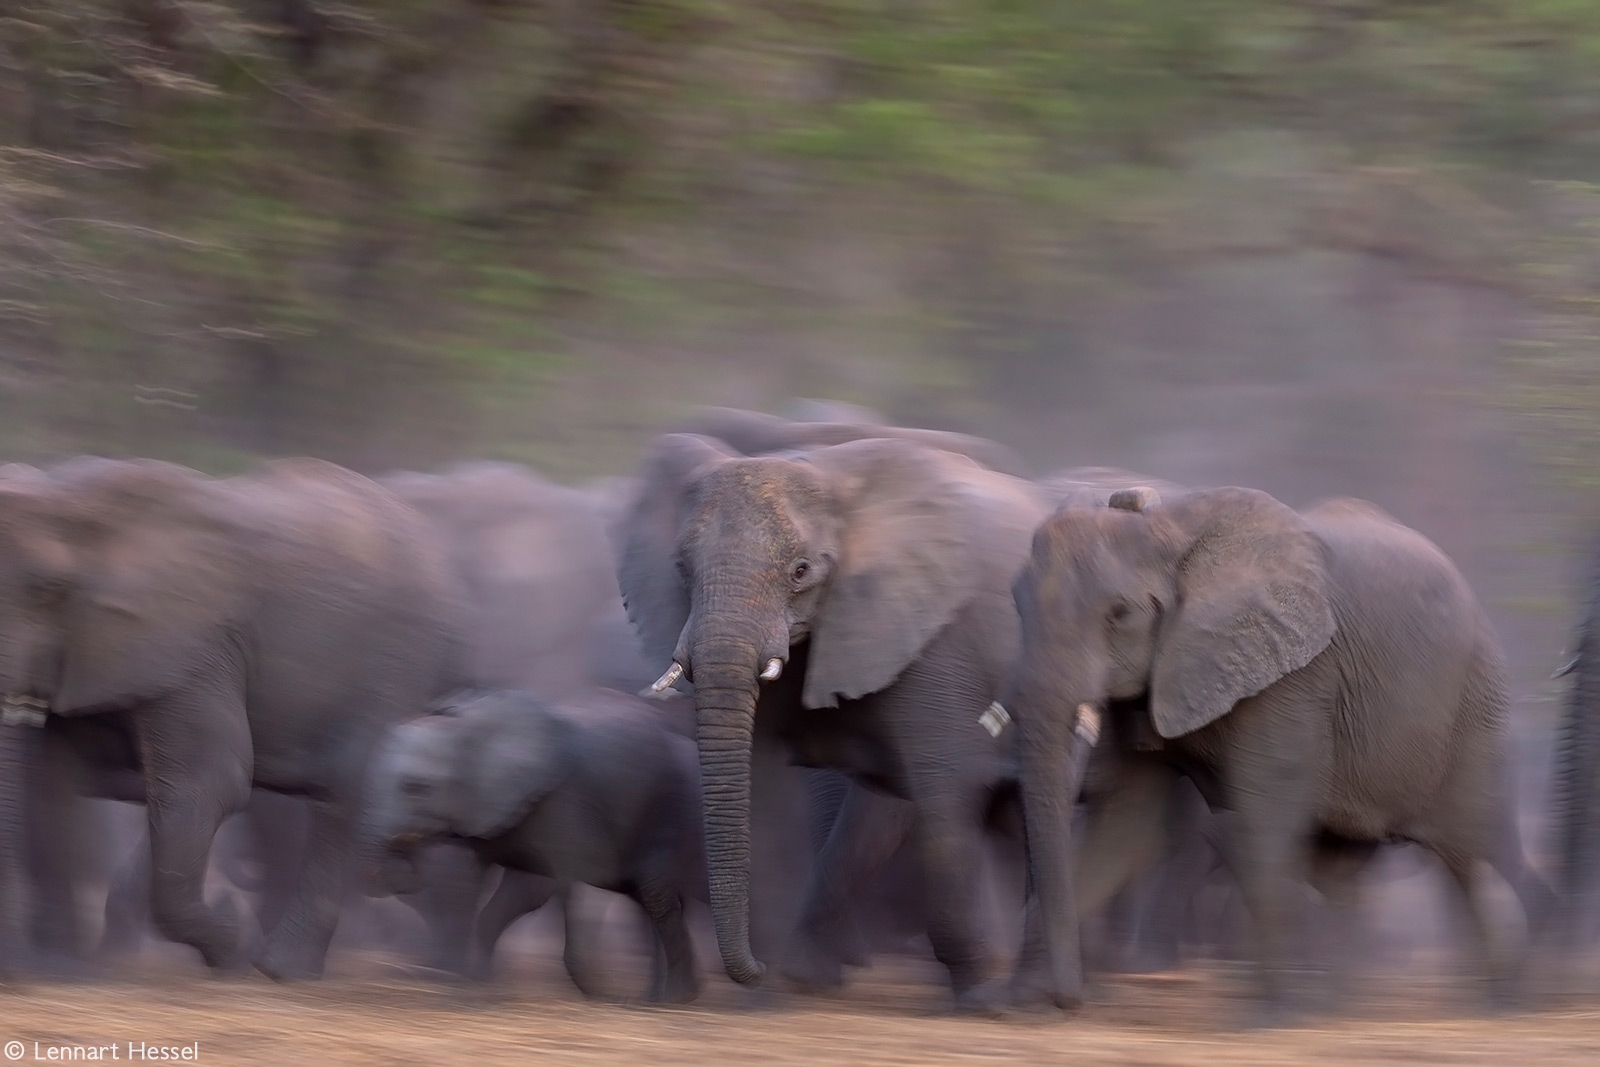 An elephant herd on the move. Zakouma National Park, Chad © Lennart Hessel